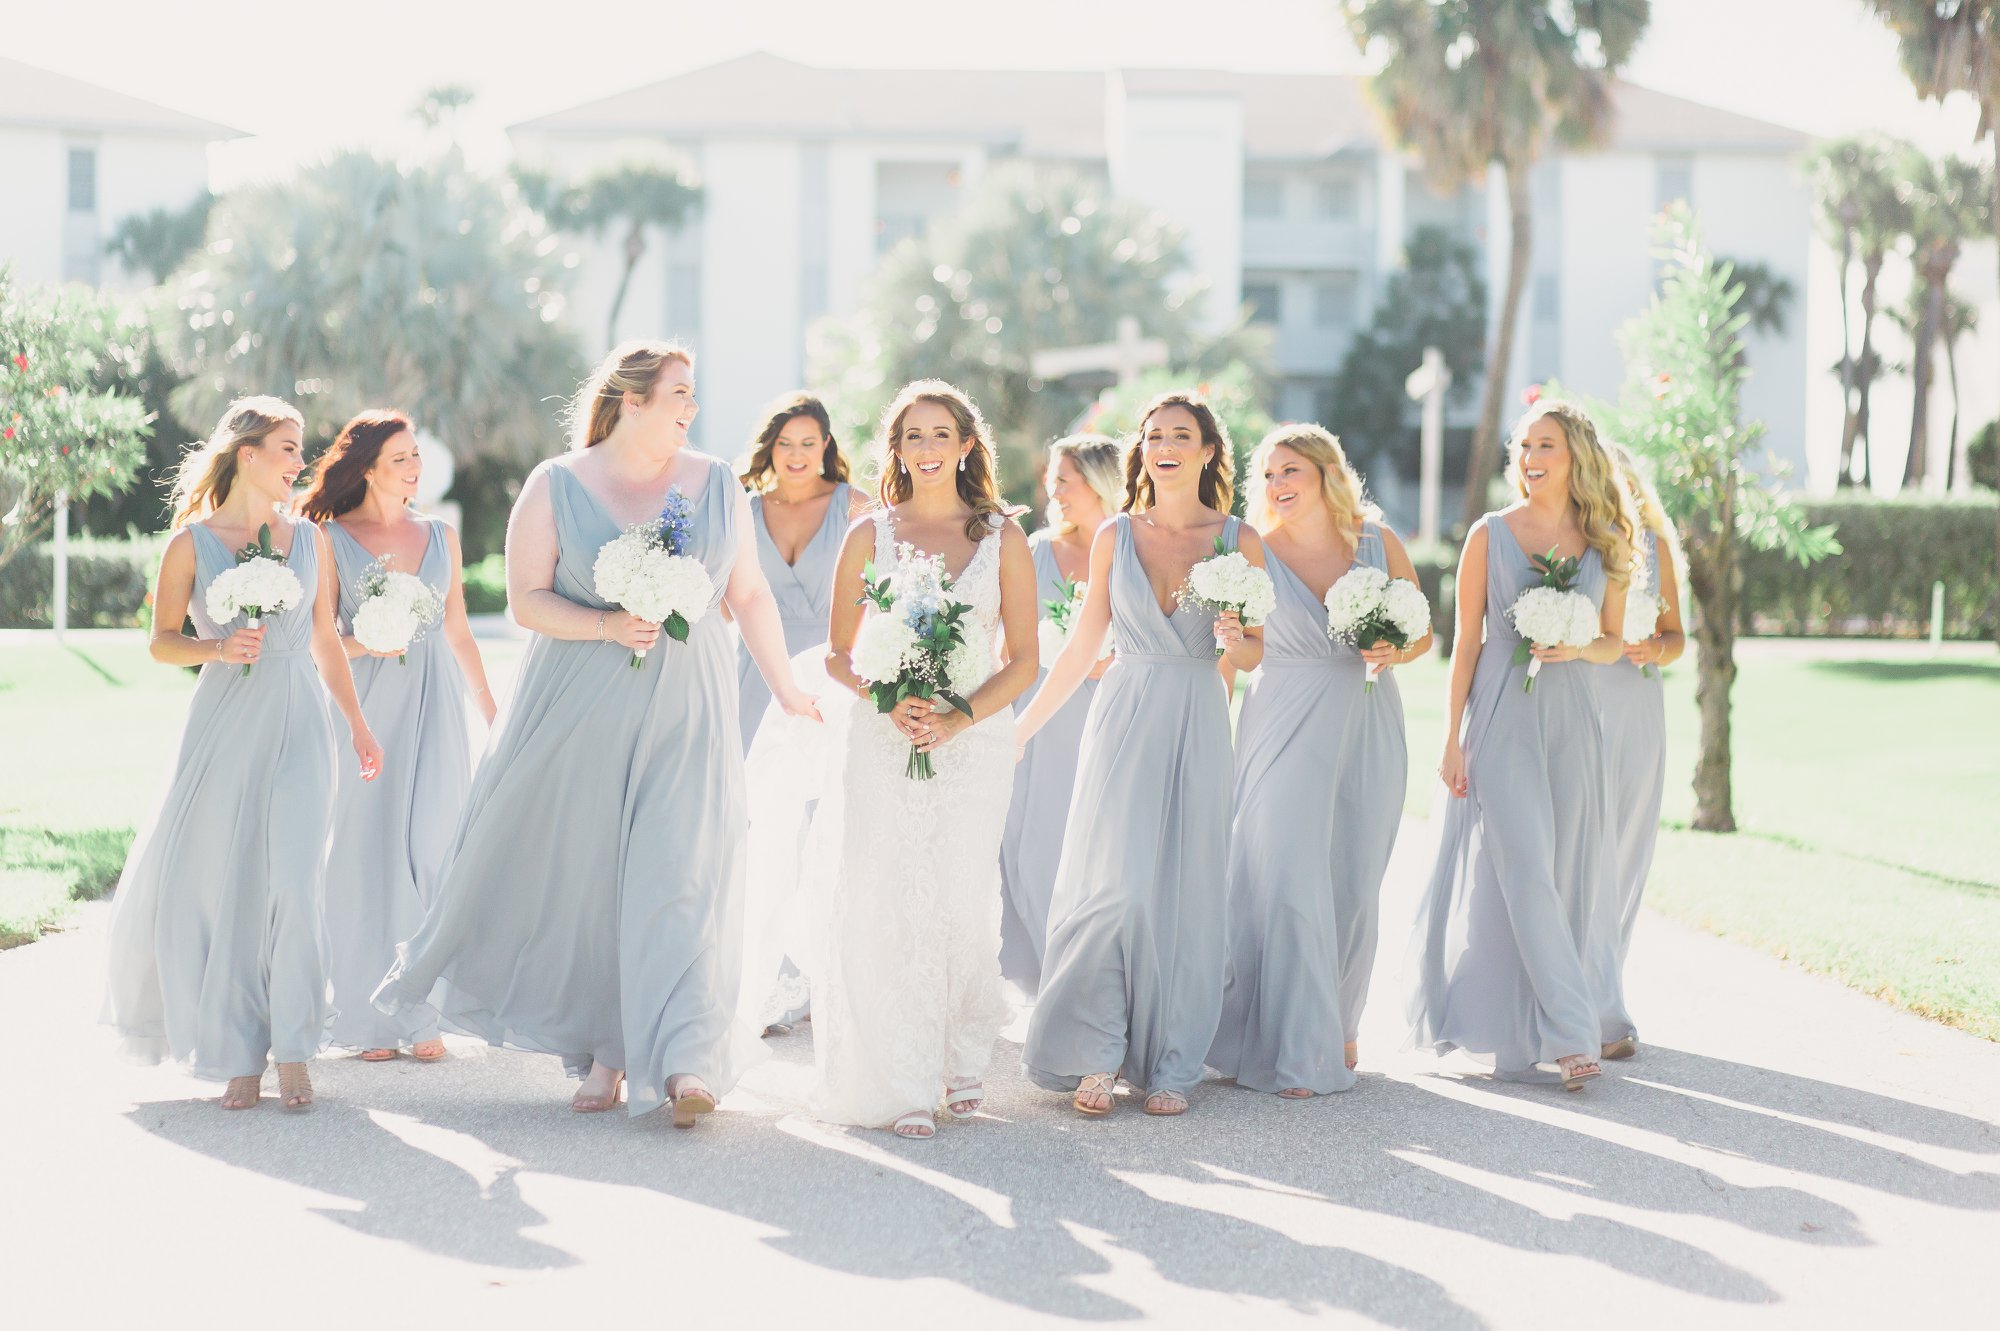 Presley + Hunter | Jensen Beach, Florida | Marriott Hutchinson Island Beach Resort